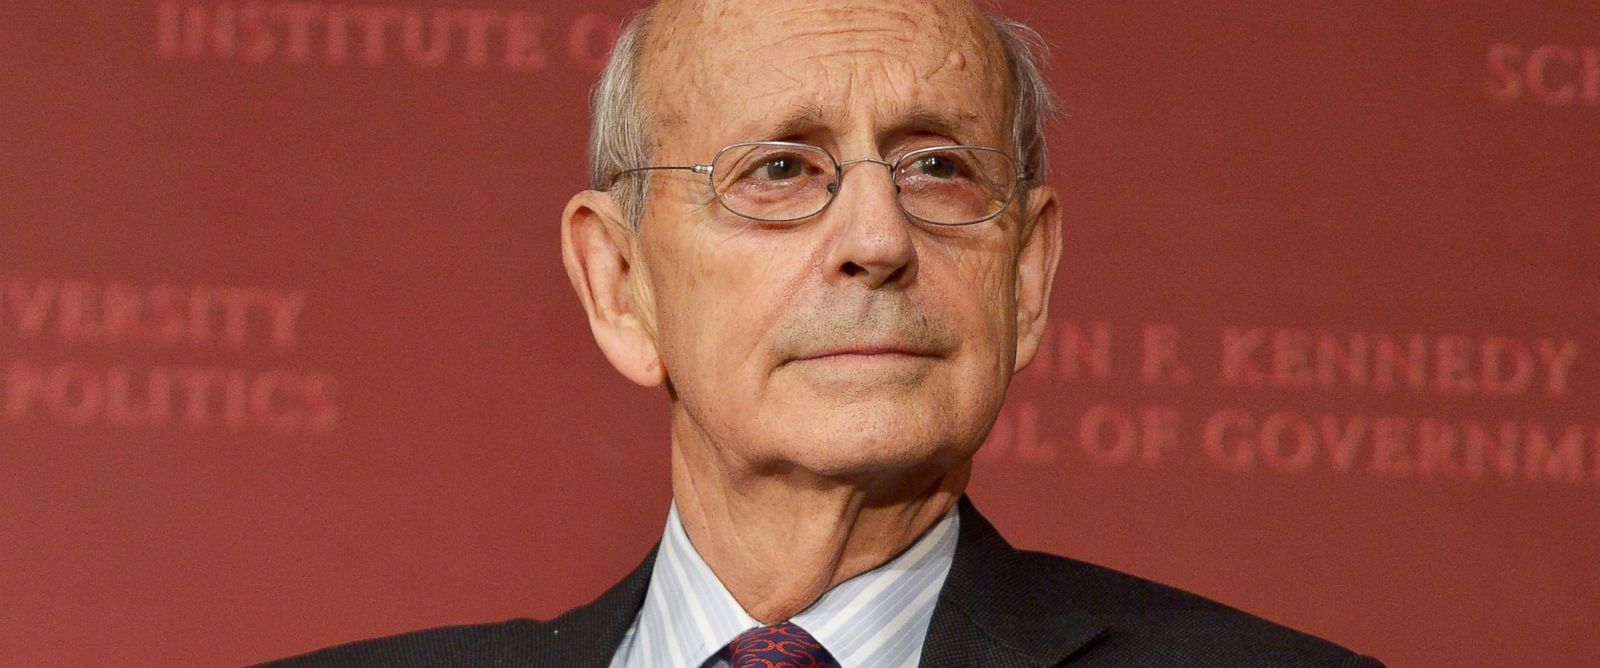 PHOTO: Supreme Court Justice Stephen Breyer speaks at the Harvard University Institute of Politics in Cambridge, Mass., Nov. 6, 2015.